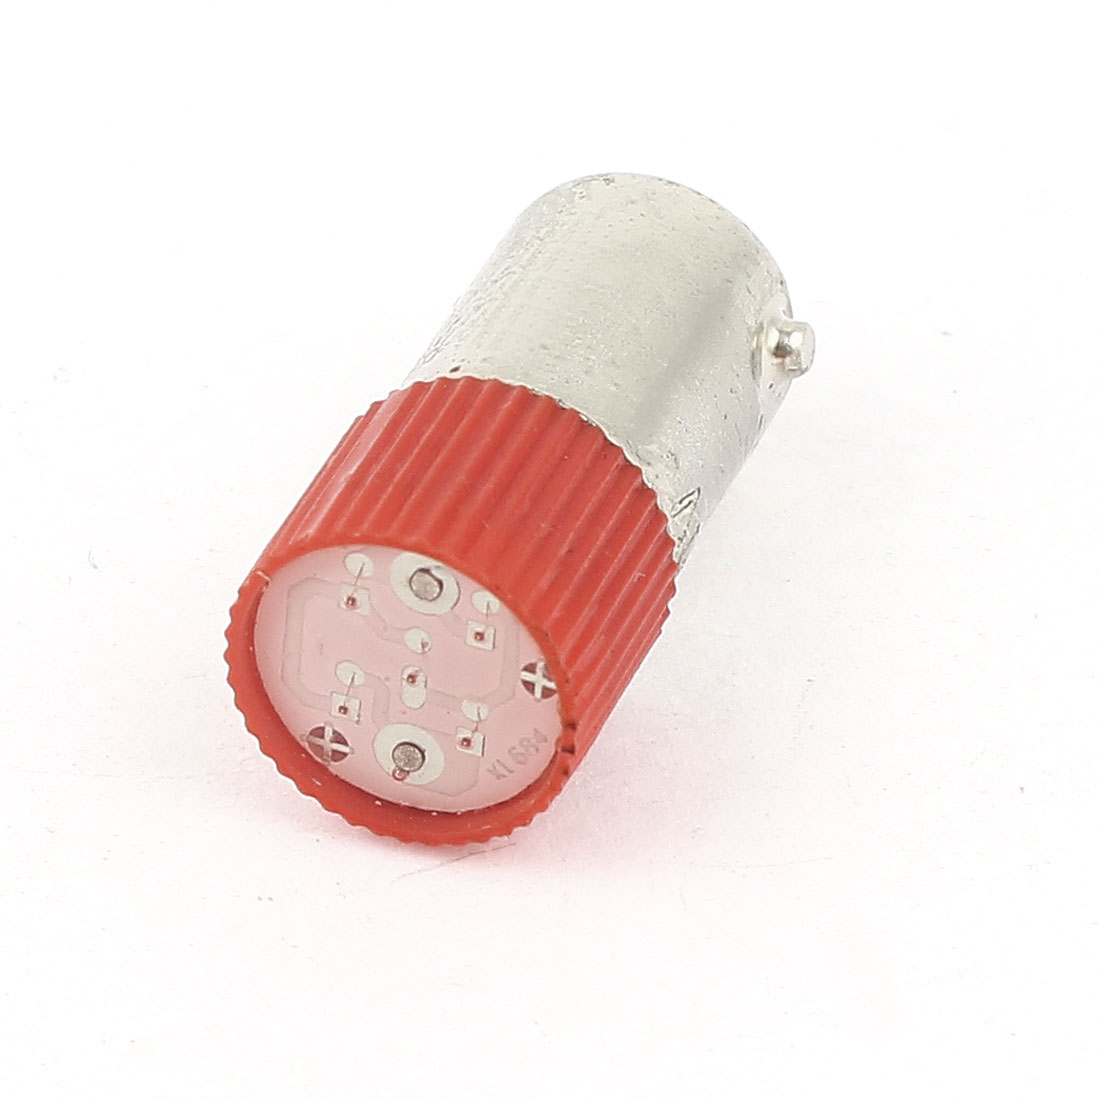 Industrial 10mm Round Head Red LED Light Signal Indicator Lamp AC 220V/240V 3A